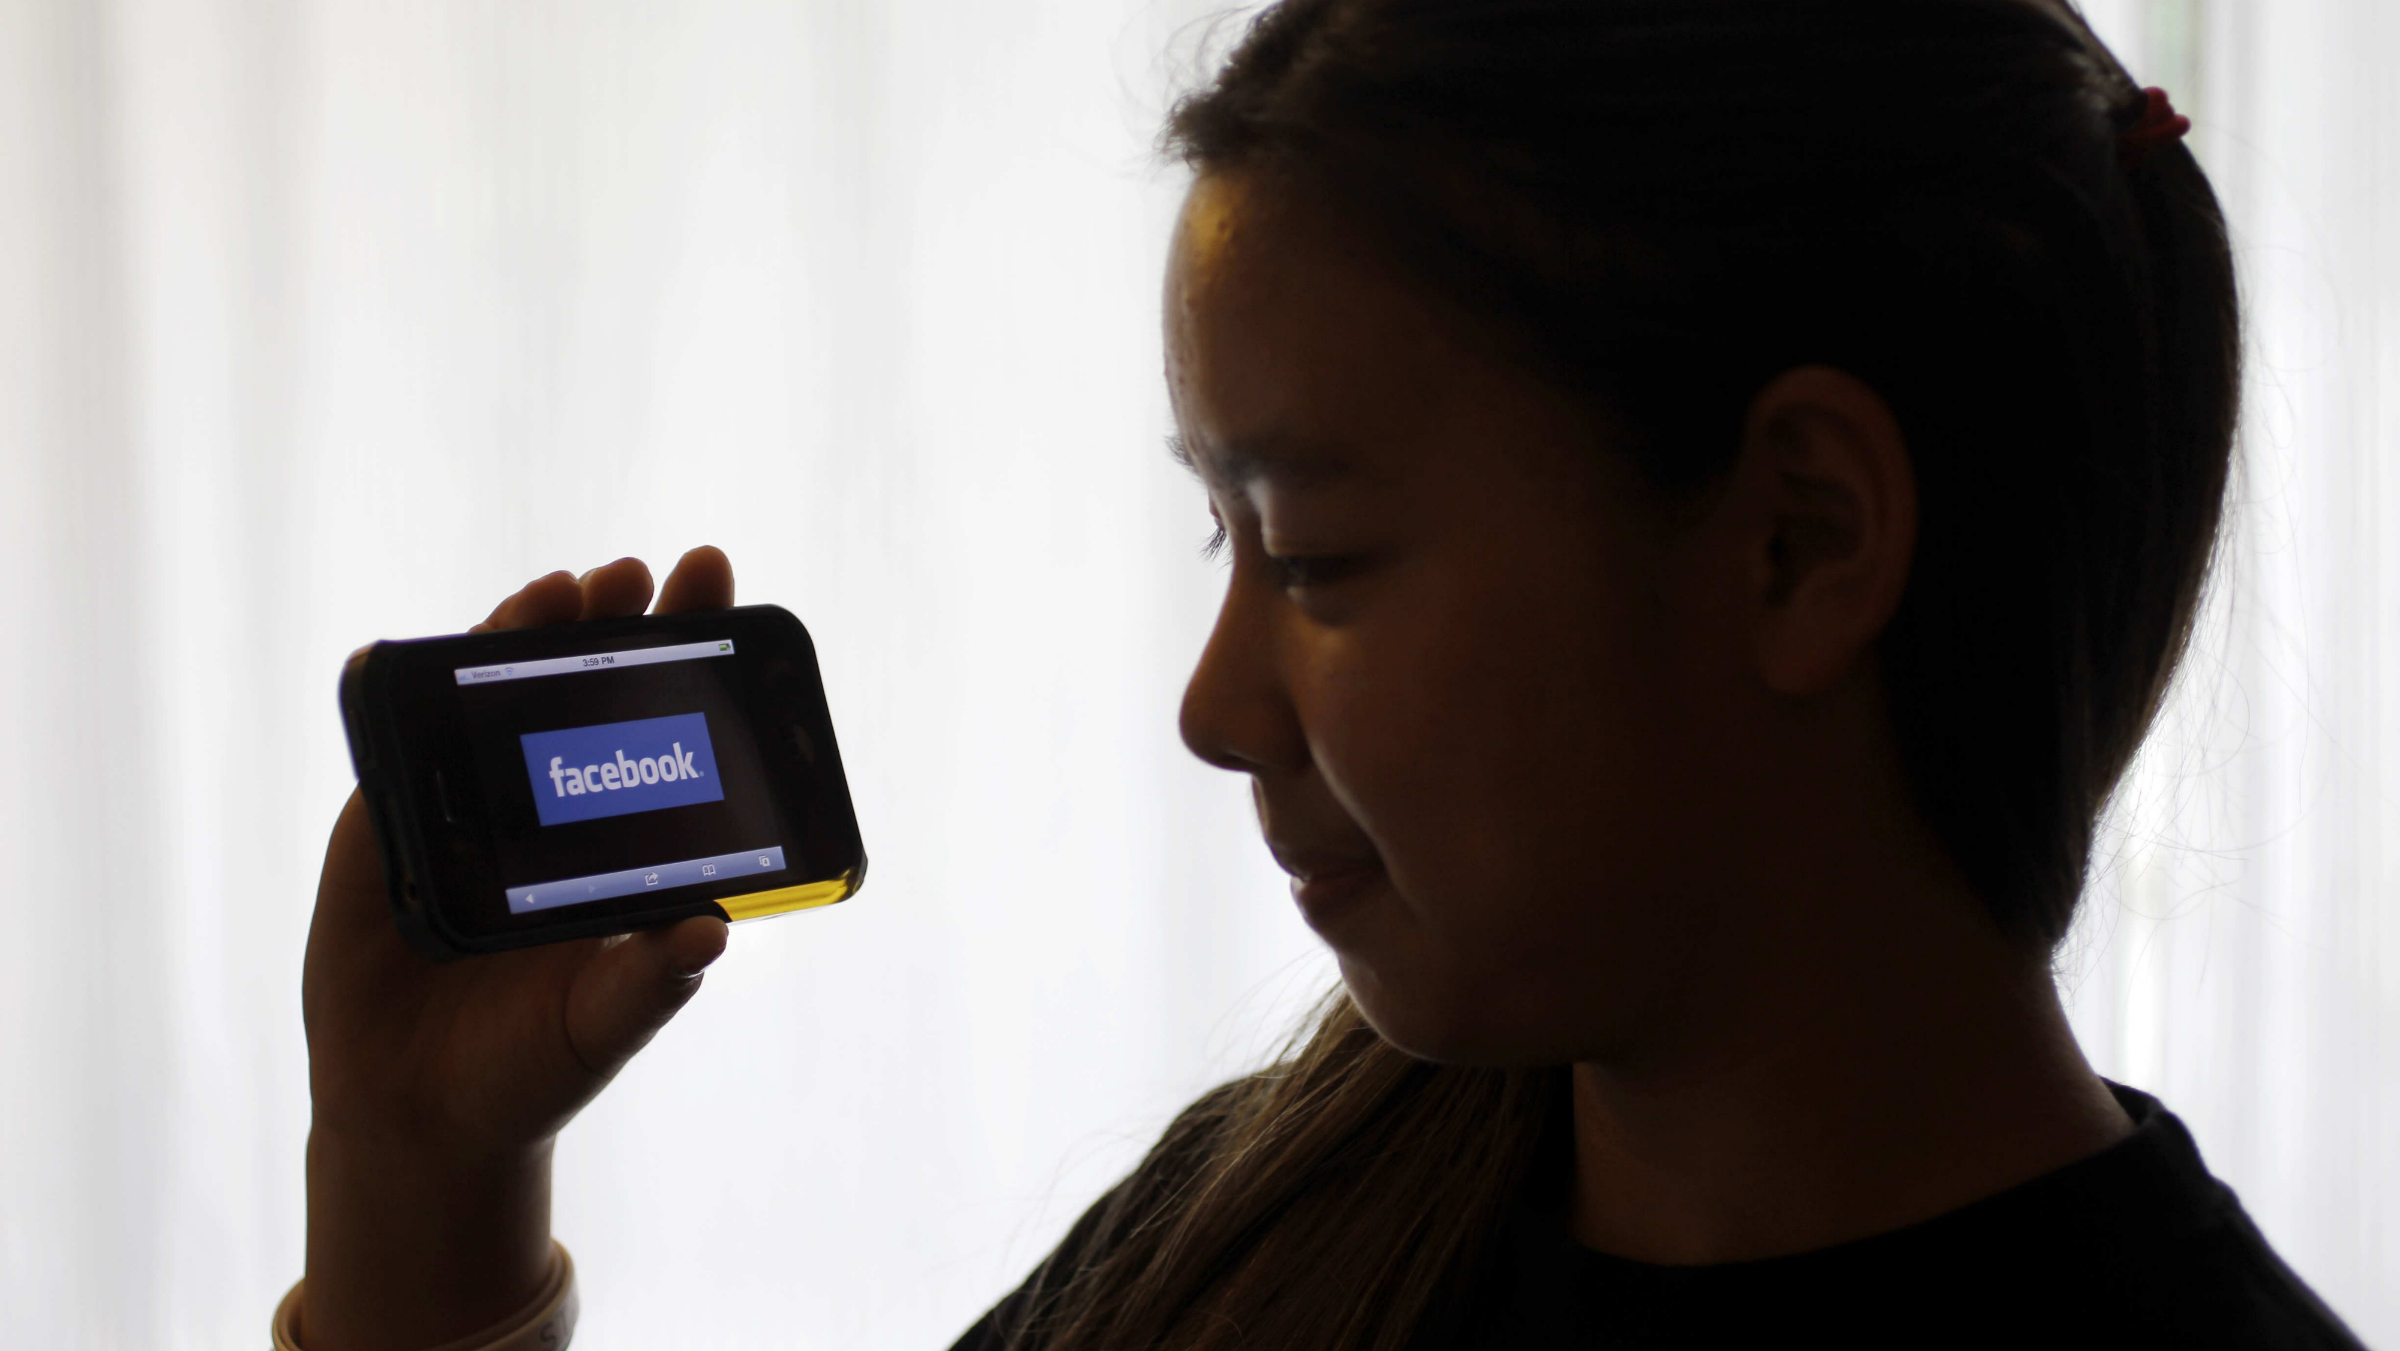 An unidentified 11-year-old girl holds up her iPhone with the Facebook website displayed at her home in Palo Alto, Calif., Monday, June 4, 2012. Though Facebook bans children under 13, millions of them have profiles on the site by lying about their age. The company is now testing ways to allow those kids to participate without needing to lie. This would likely be under parental supervision, such as by connecting children's accounts to their parents' accounts. (AP Photo/Paul Sakuma)